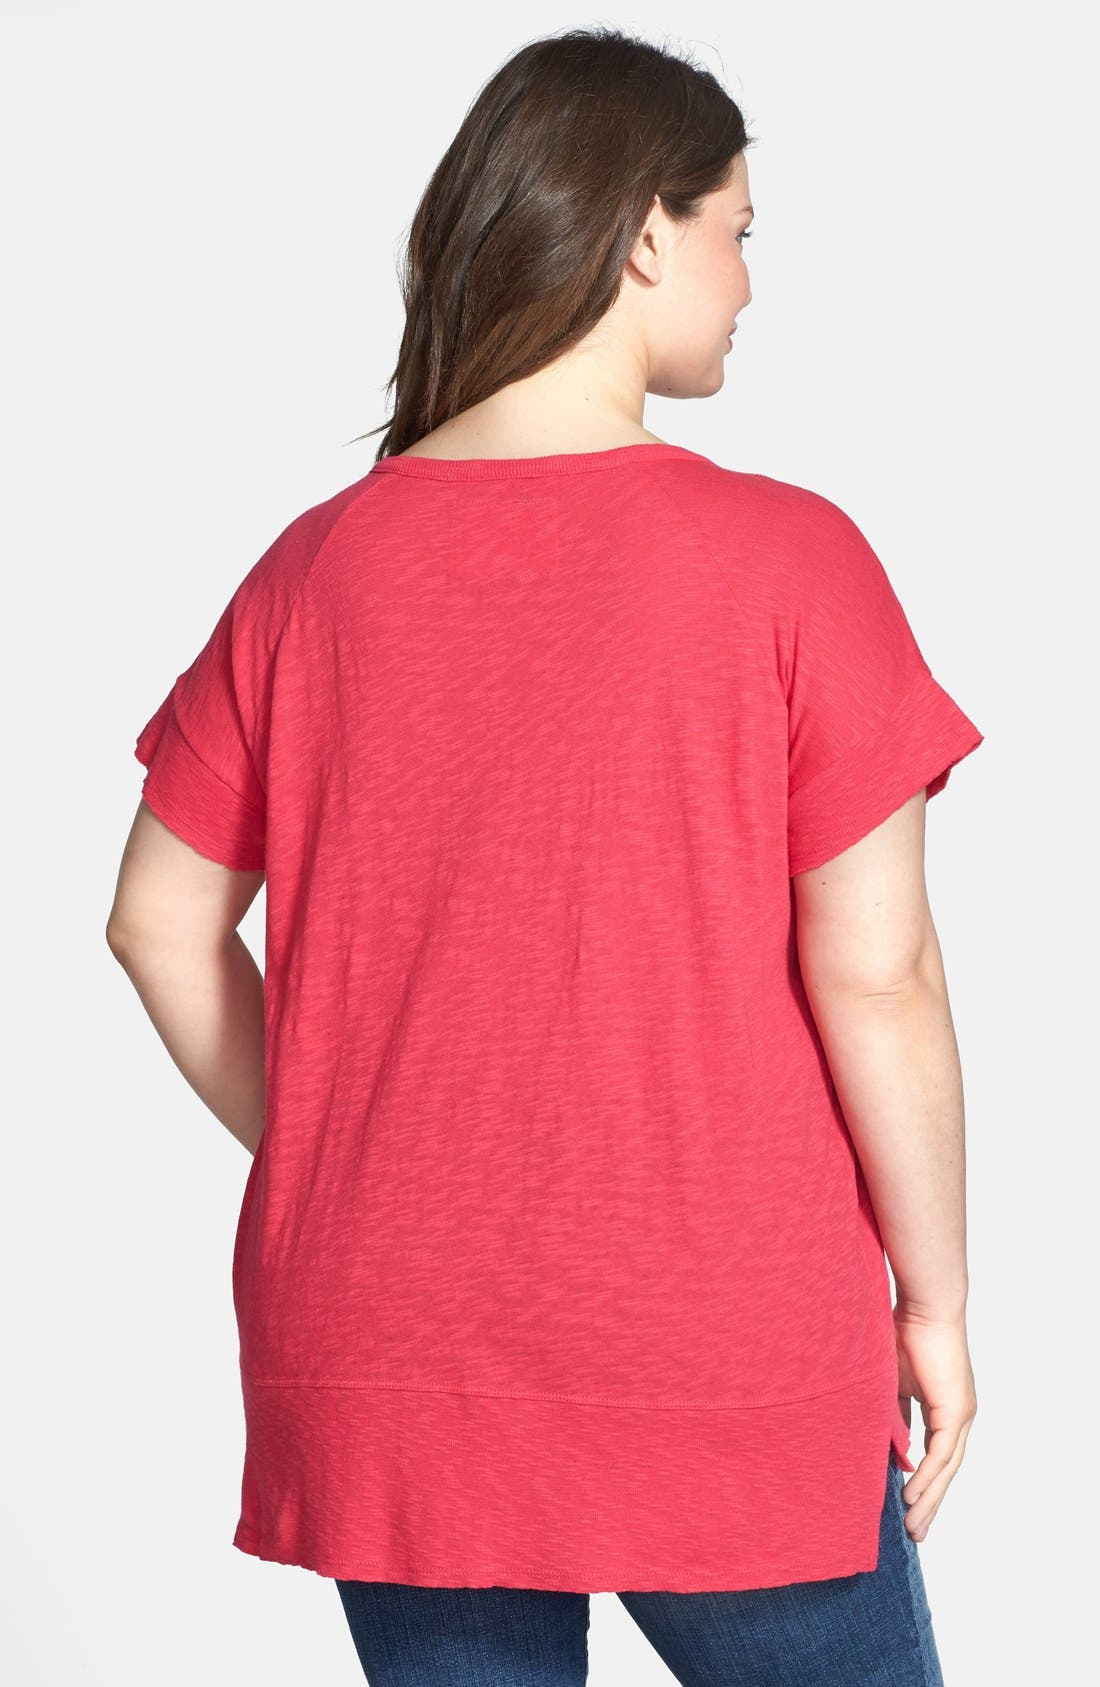 Alternate Image 2  - DKNY Jeans 'East West Slouchy Summer' Knit Top (Plus Size)